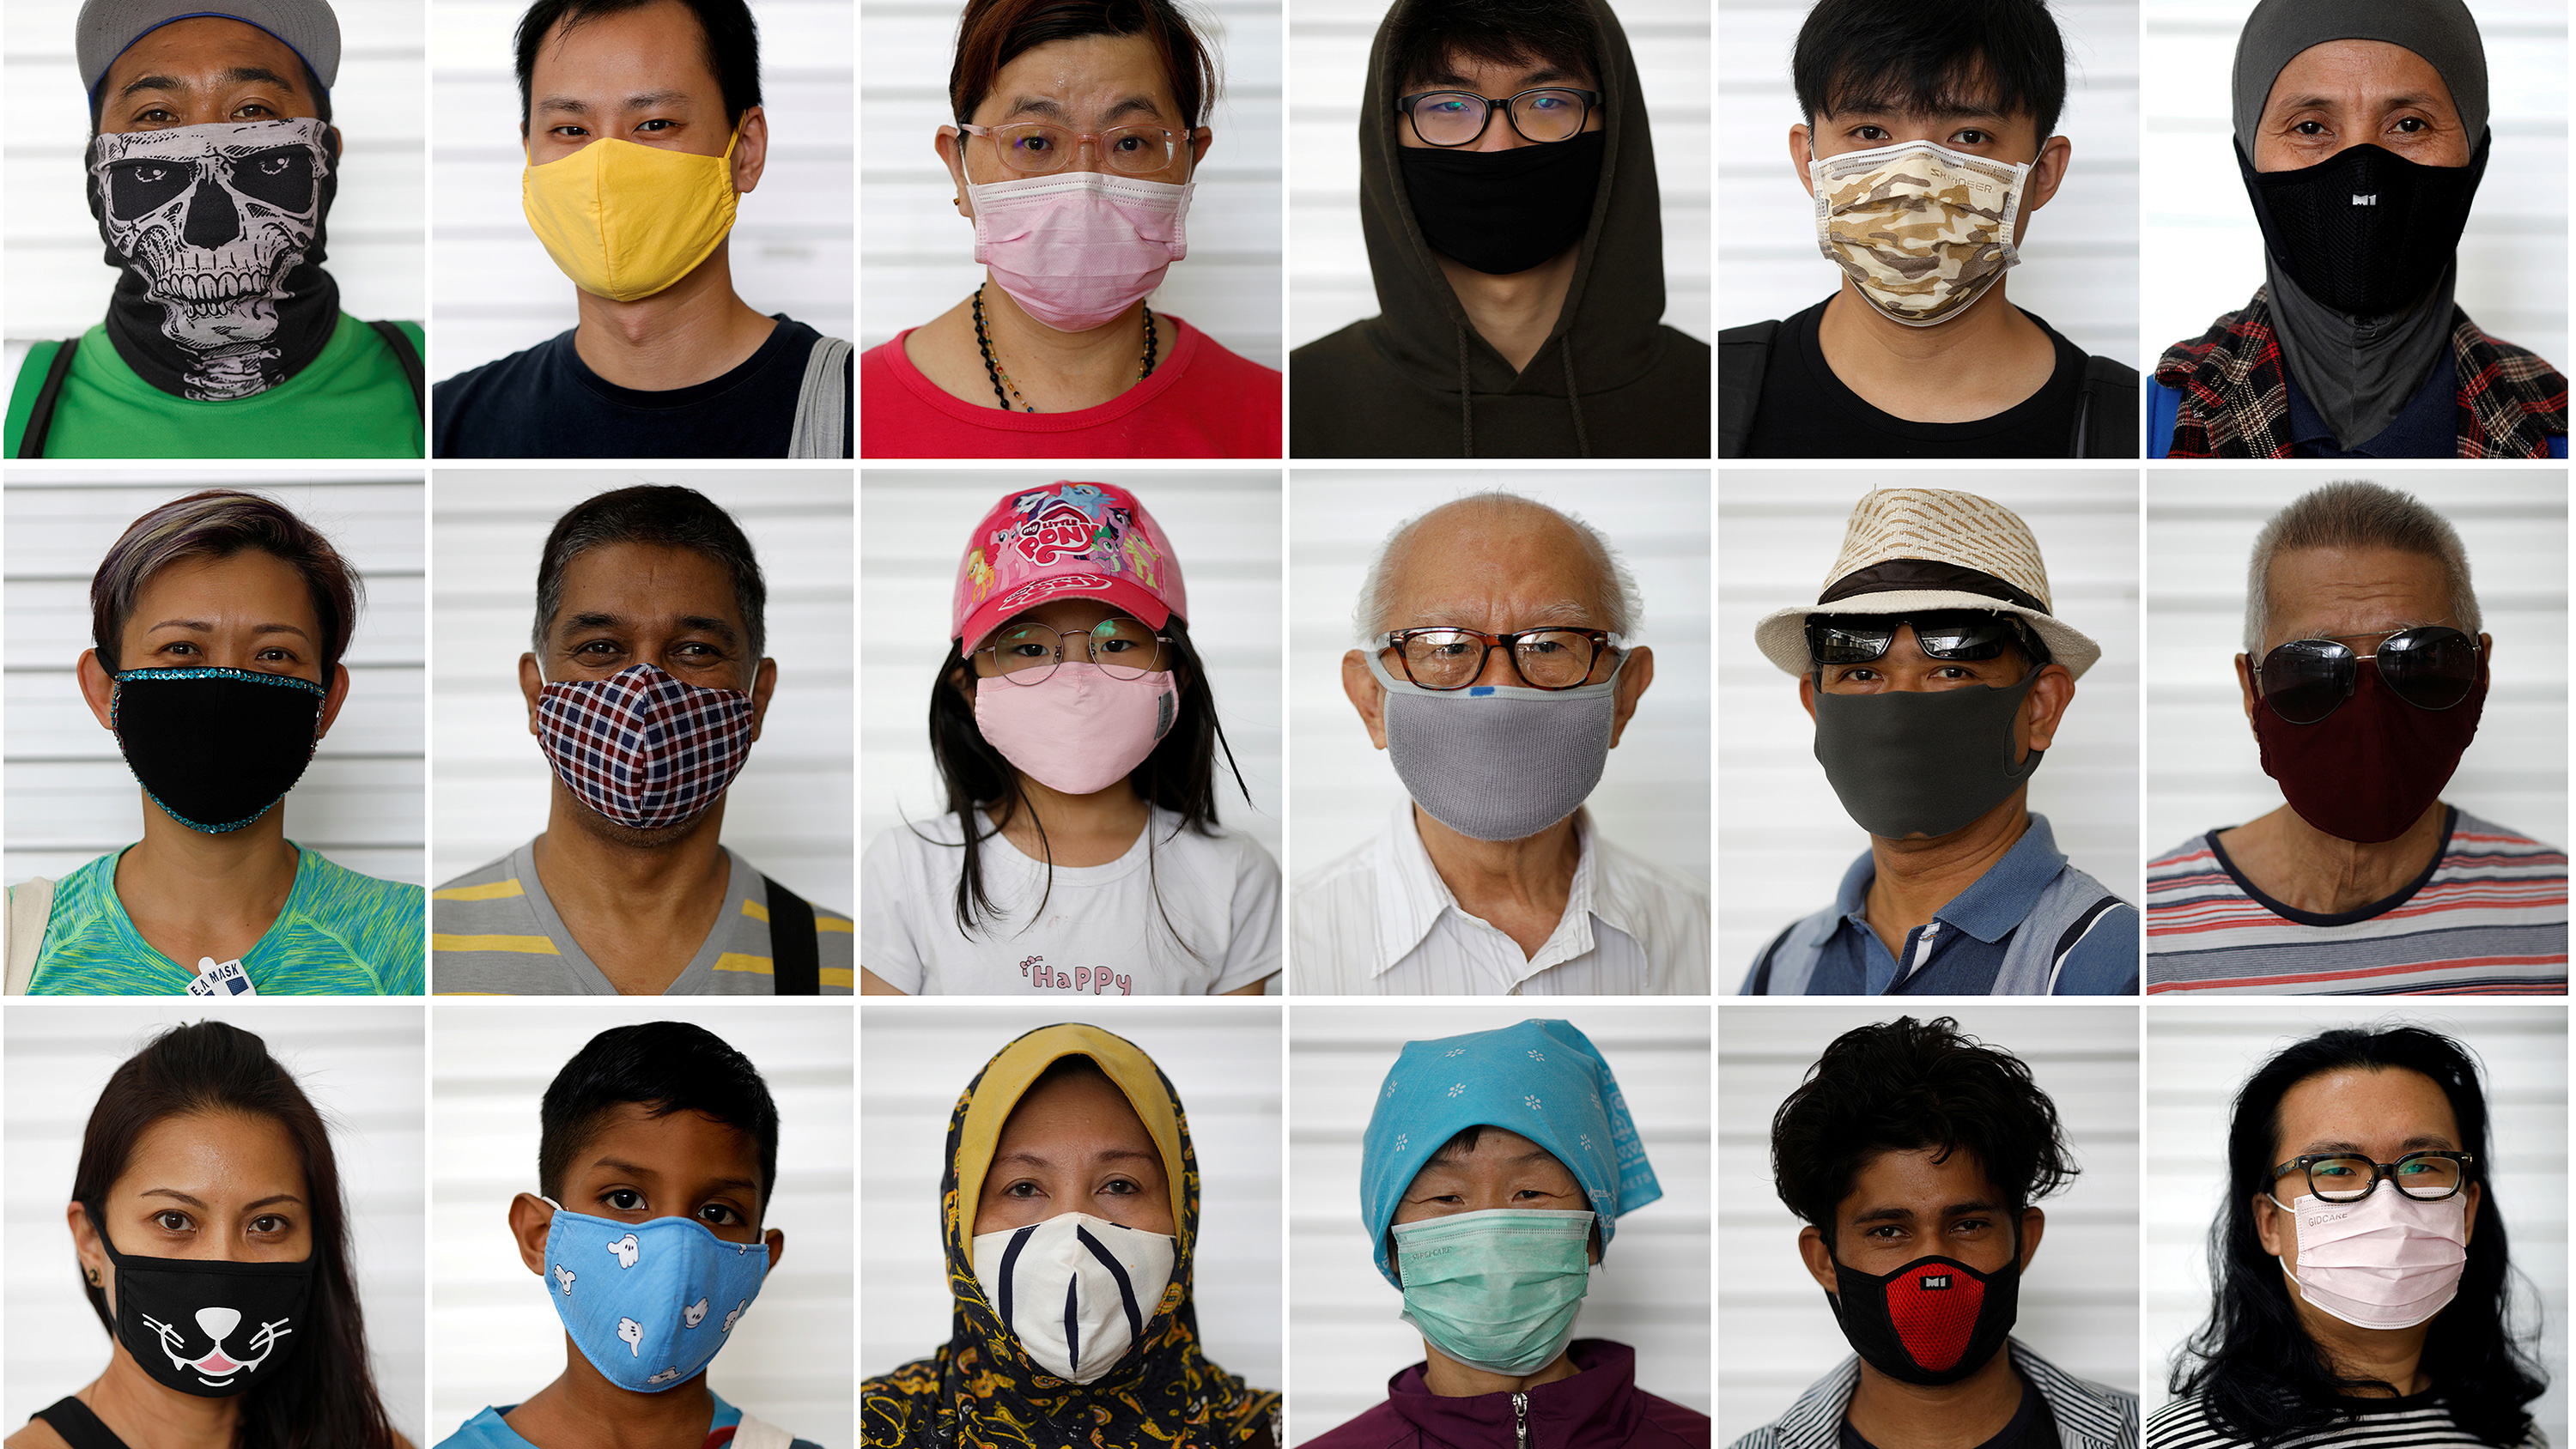 The photo shows an array of people wearing a variety of masks.